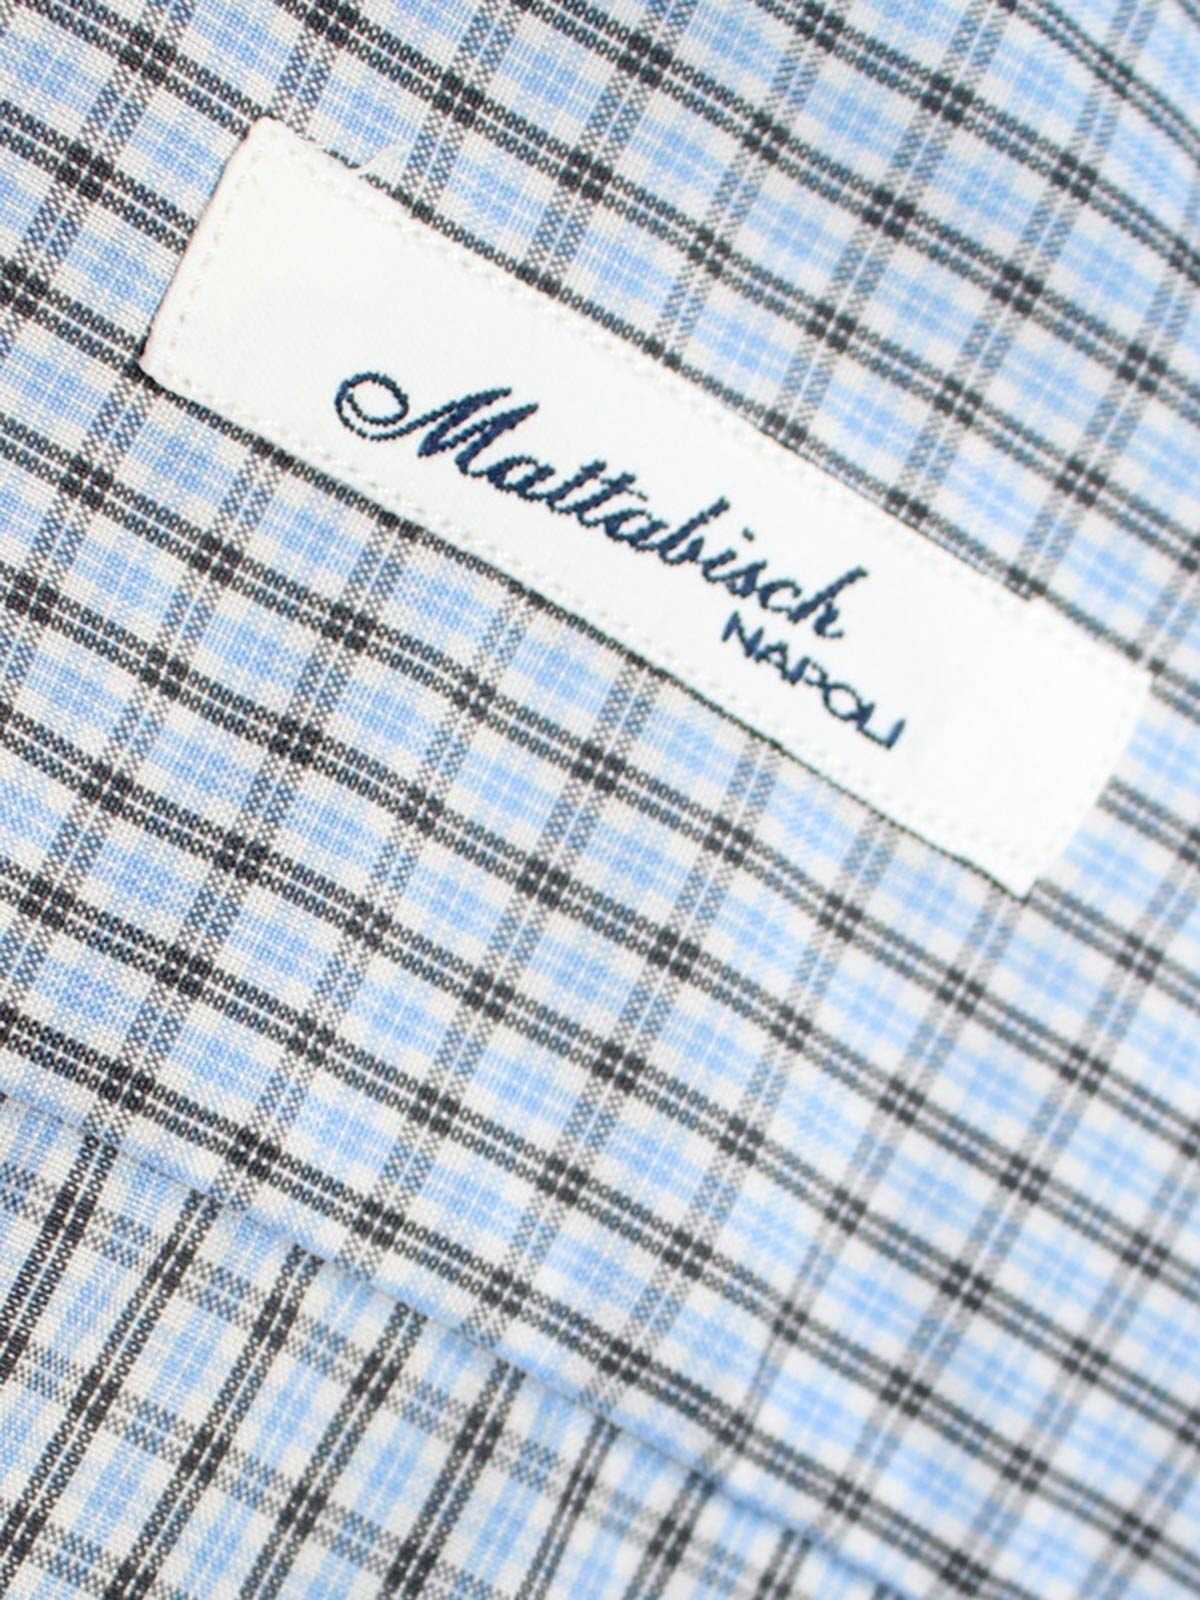 Mattabisch Dress Shirt